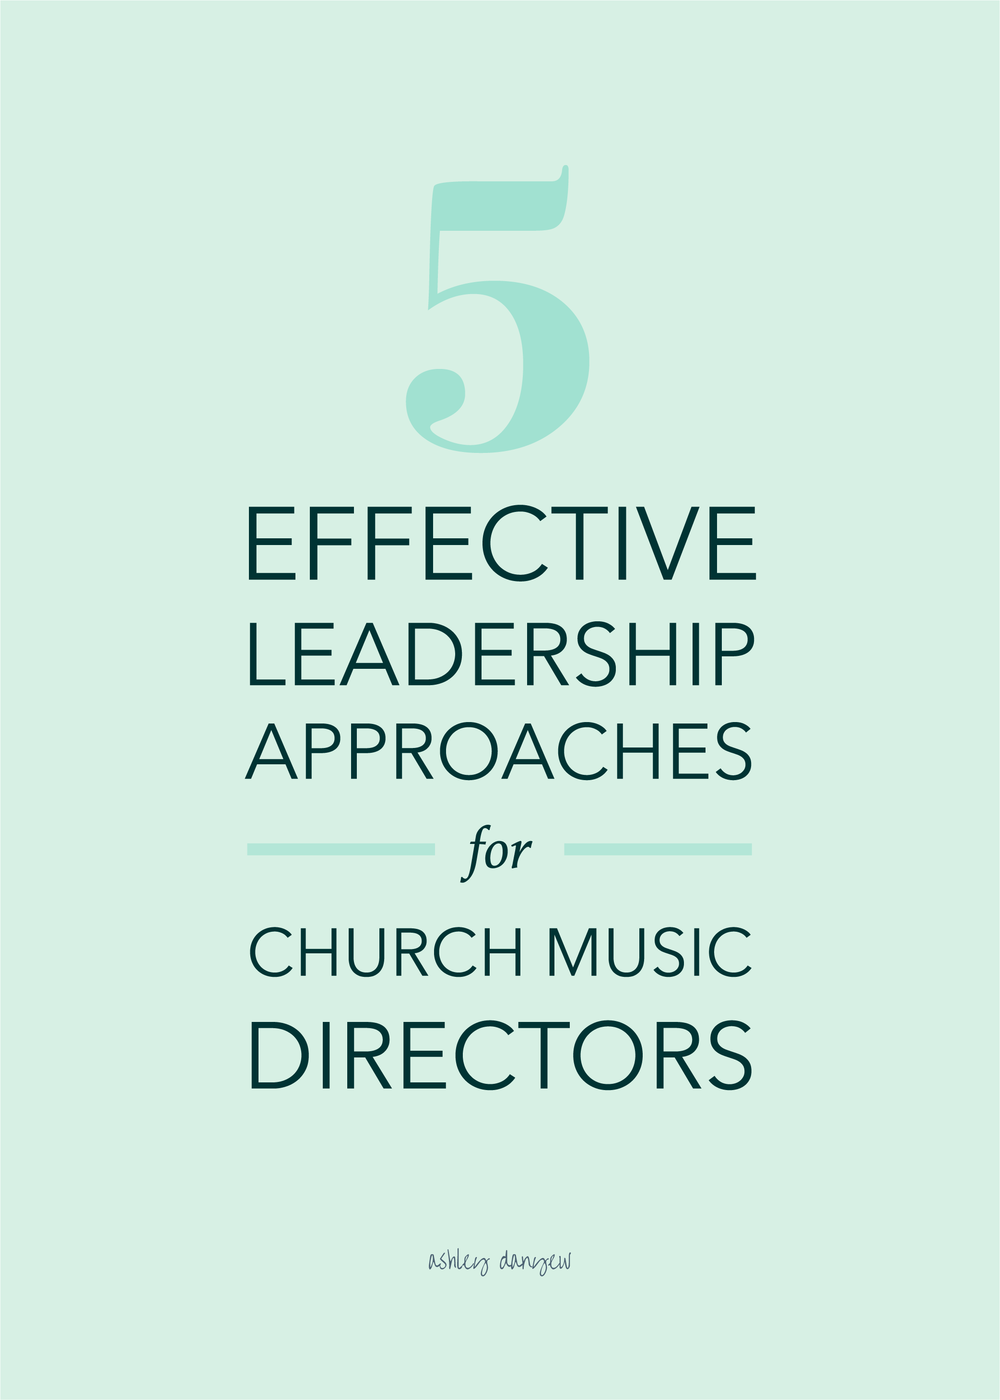 5 Effective Leadership Approaches for Church Music Directors